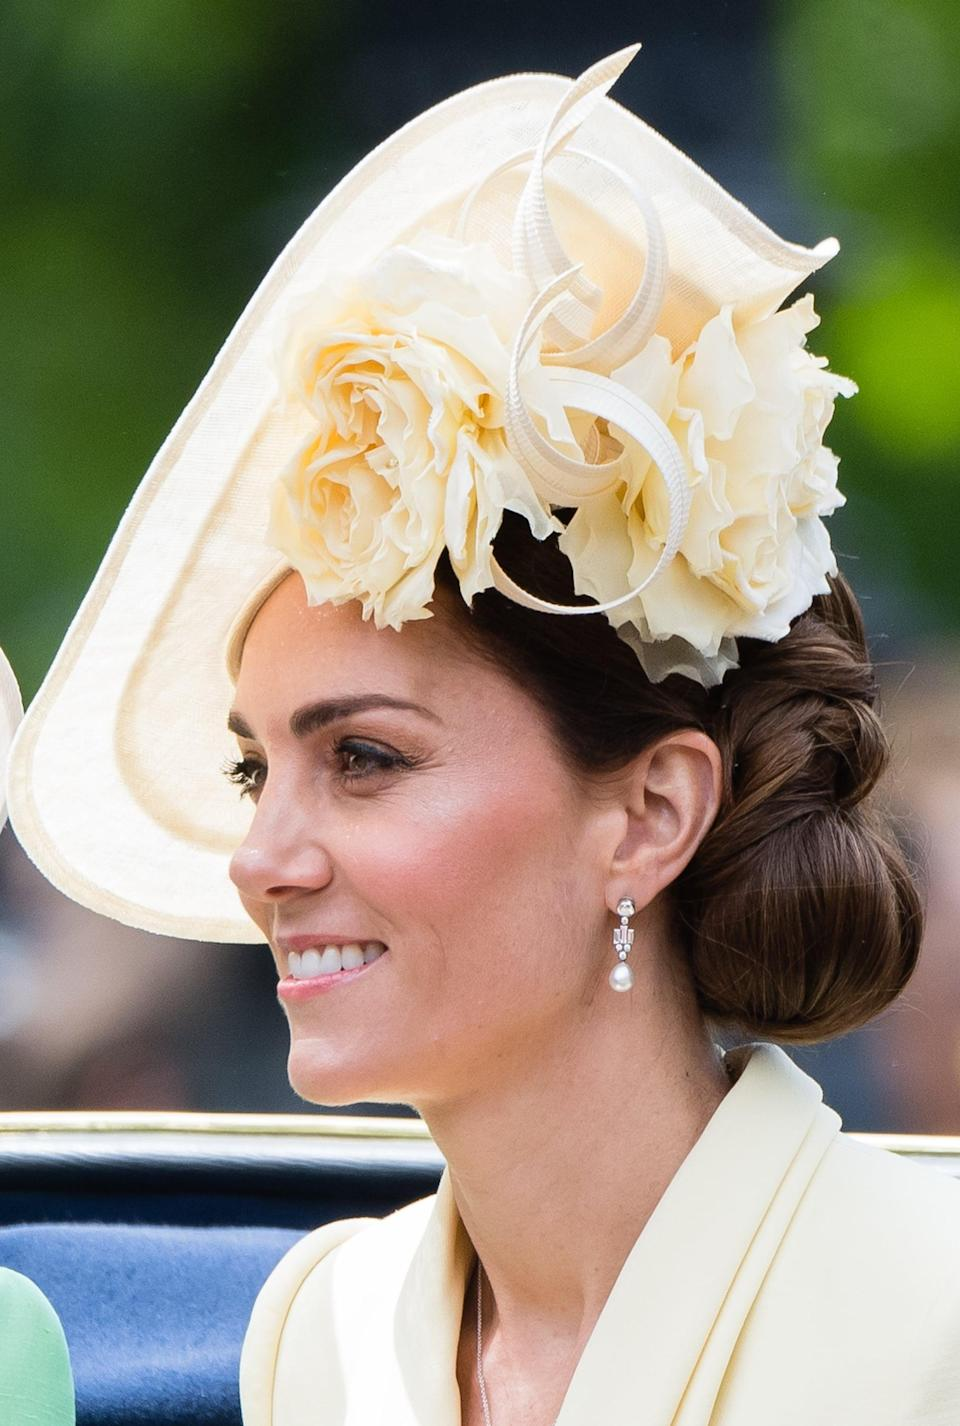 "<p>Here's another example - at this year's <a href=""https://www.popsugar.co.uk/beauty/Meghan-Markle-Kate-Middleton-Hair-Trooping-Colour-46247518"" class=""link rapid-noclick-resp"" rel=""nofollow noopener"" target=""_blank"" data-ylk=""slk:Trooping the Colour"">Trooping the Colour</a> - of a seemingly simple updo that upon closer inspection is actually incredibly intricate. We love how not only does the shape of her hair mimics the shape of the flowers of her Philip Treacy hat, but it also balances out the fact that the head-topper sits on such a sharp angle. </p>"